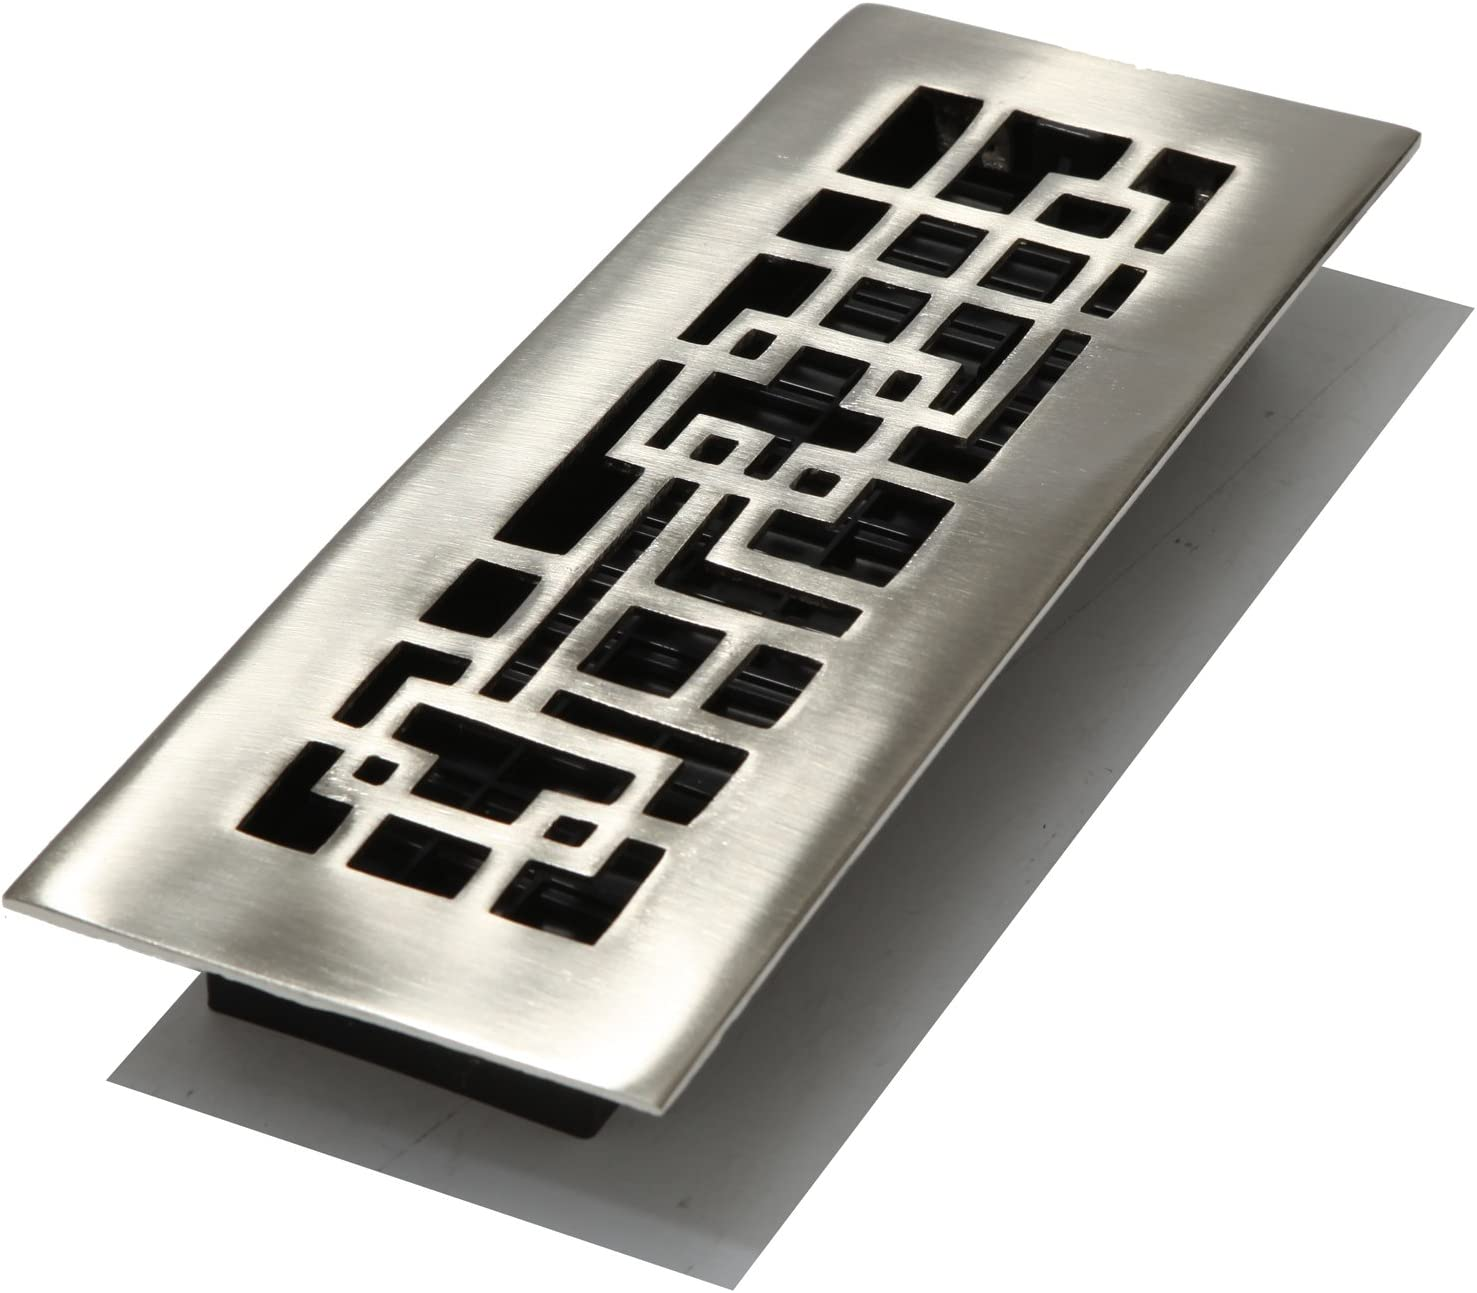 Decor Grates AB310-NKL 3-Inch by 10-Inch Abstract Floor Register, Solid Brass with Brushed Nickel Finish